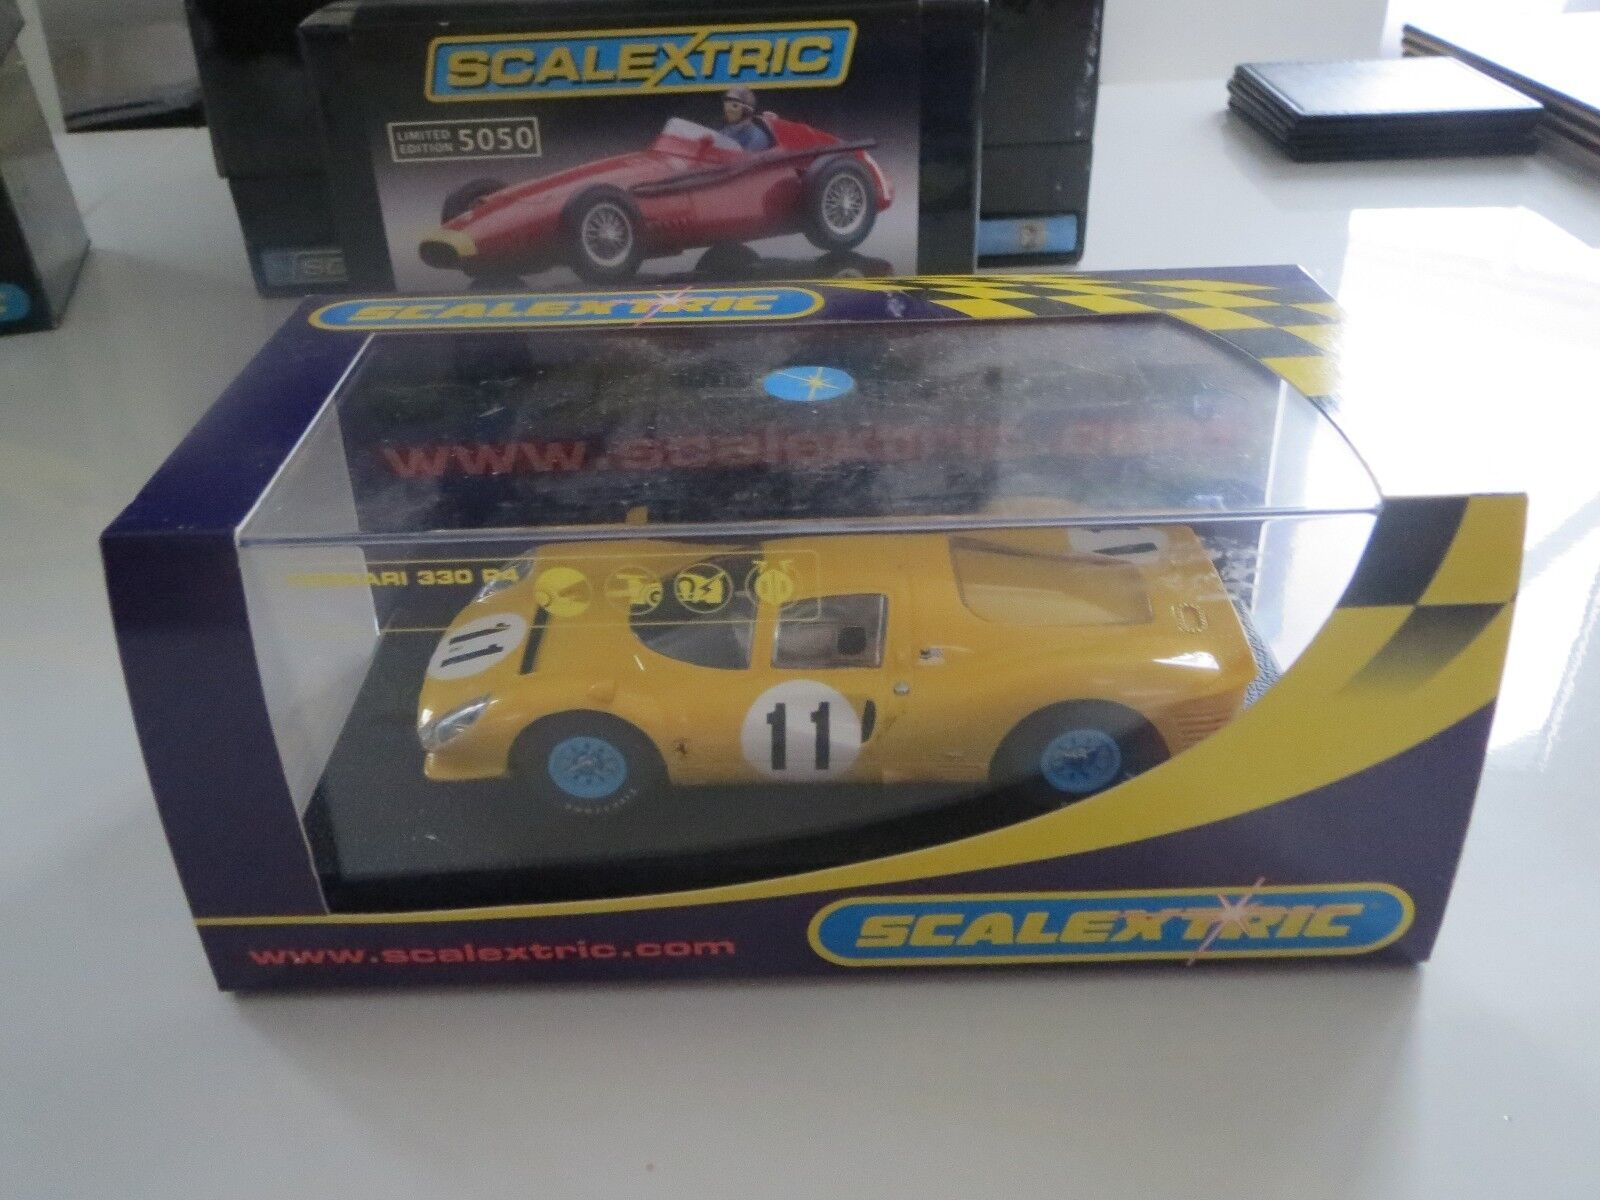 SCALEXTRIC C2787 FFERRARI 330 YELLOW  BNIB DELETED COLLECTABLE GETTING RARE